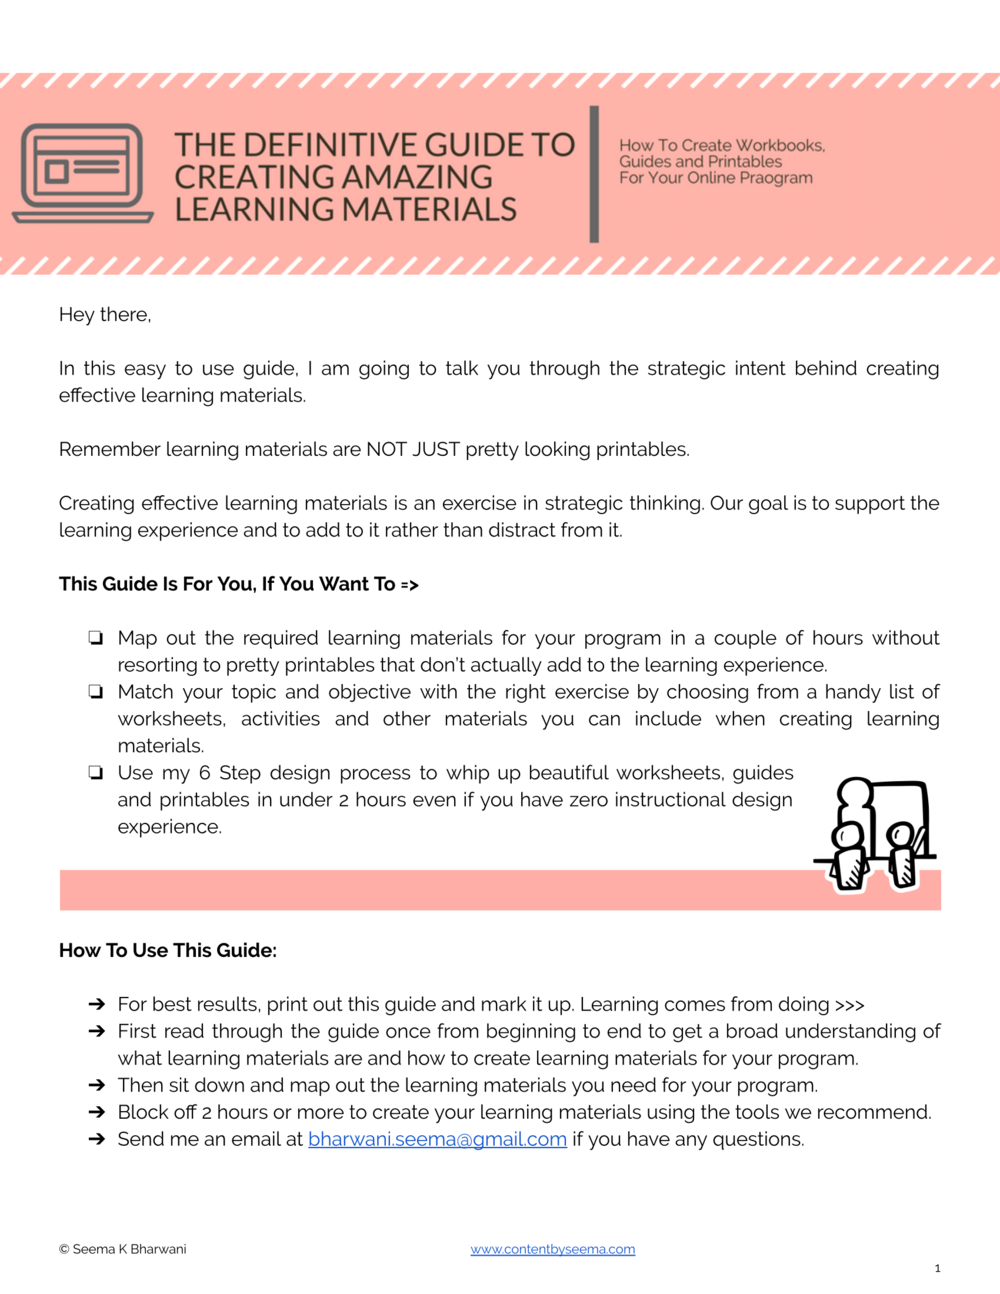 Create Amazing Learning Materials (1)-01.png